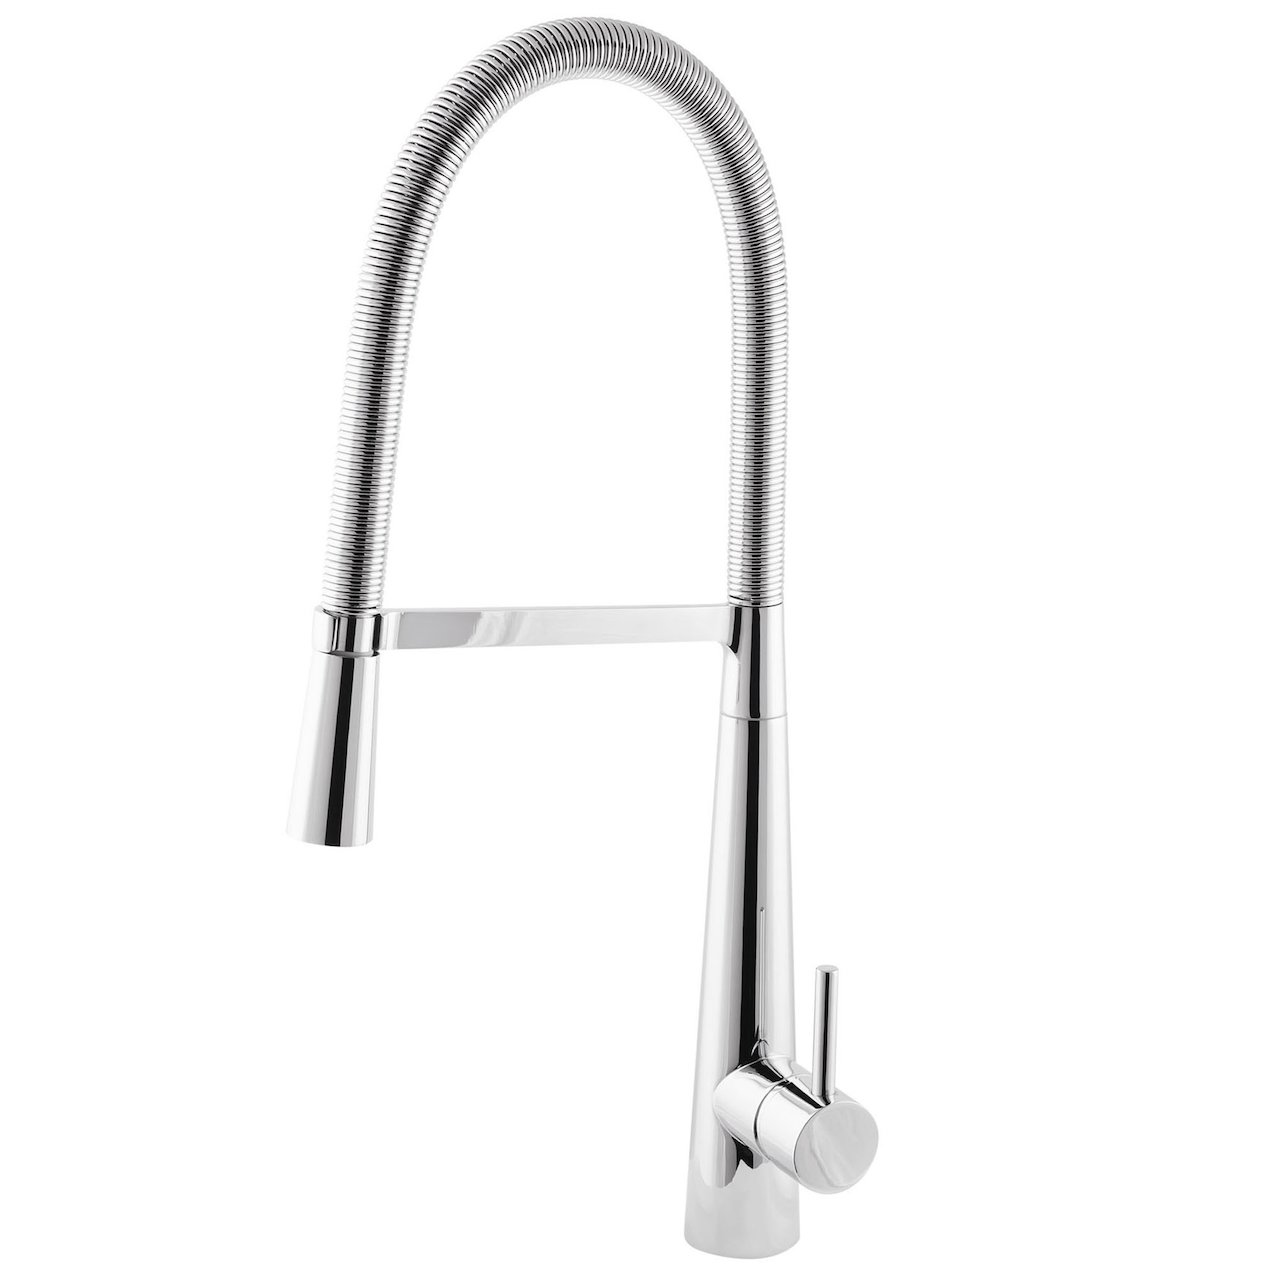 Sink mixer with spring pull down